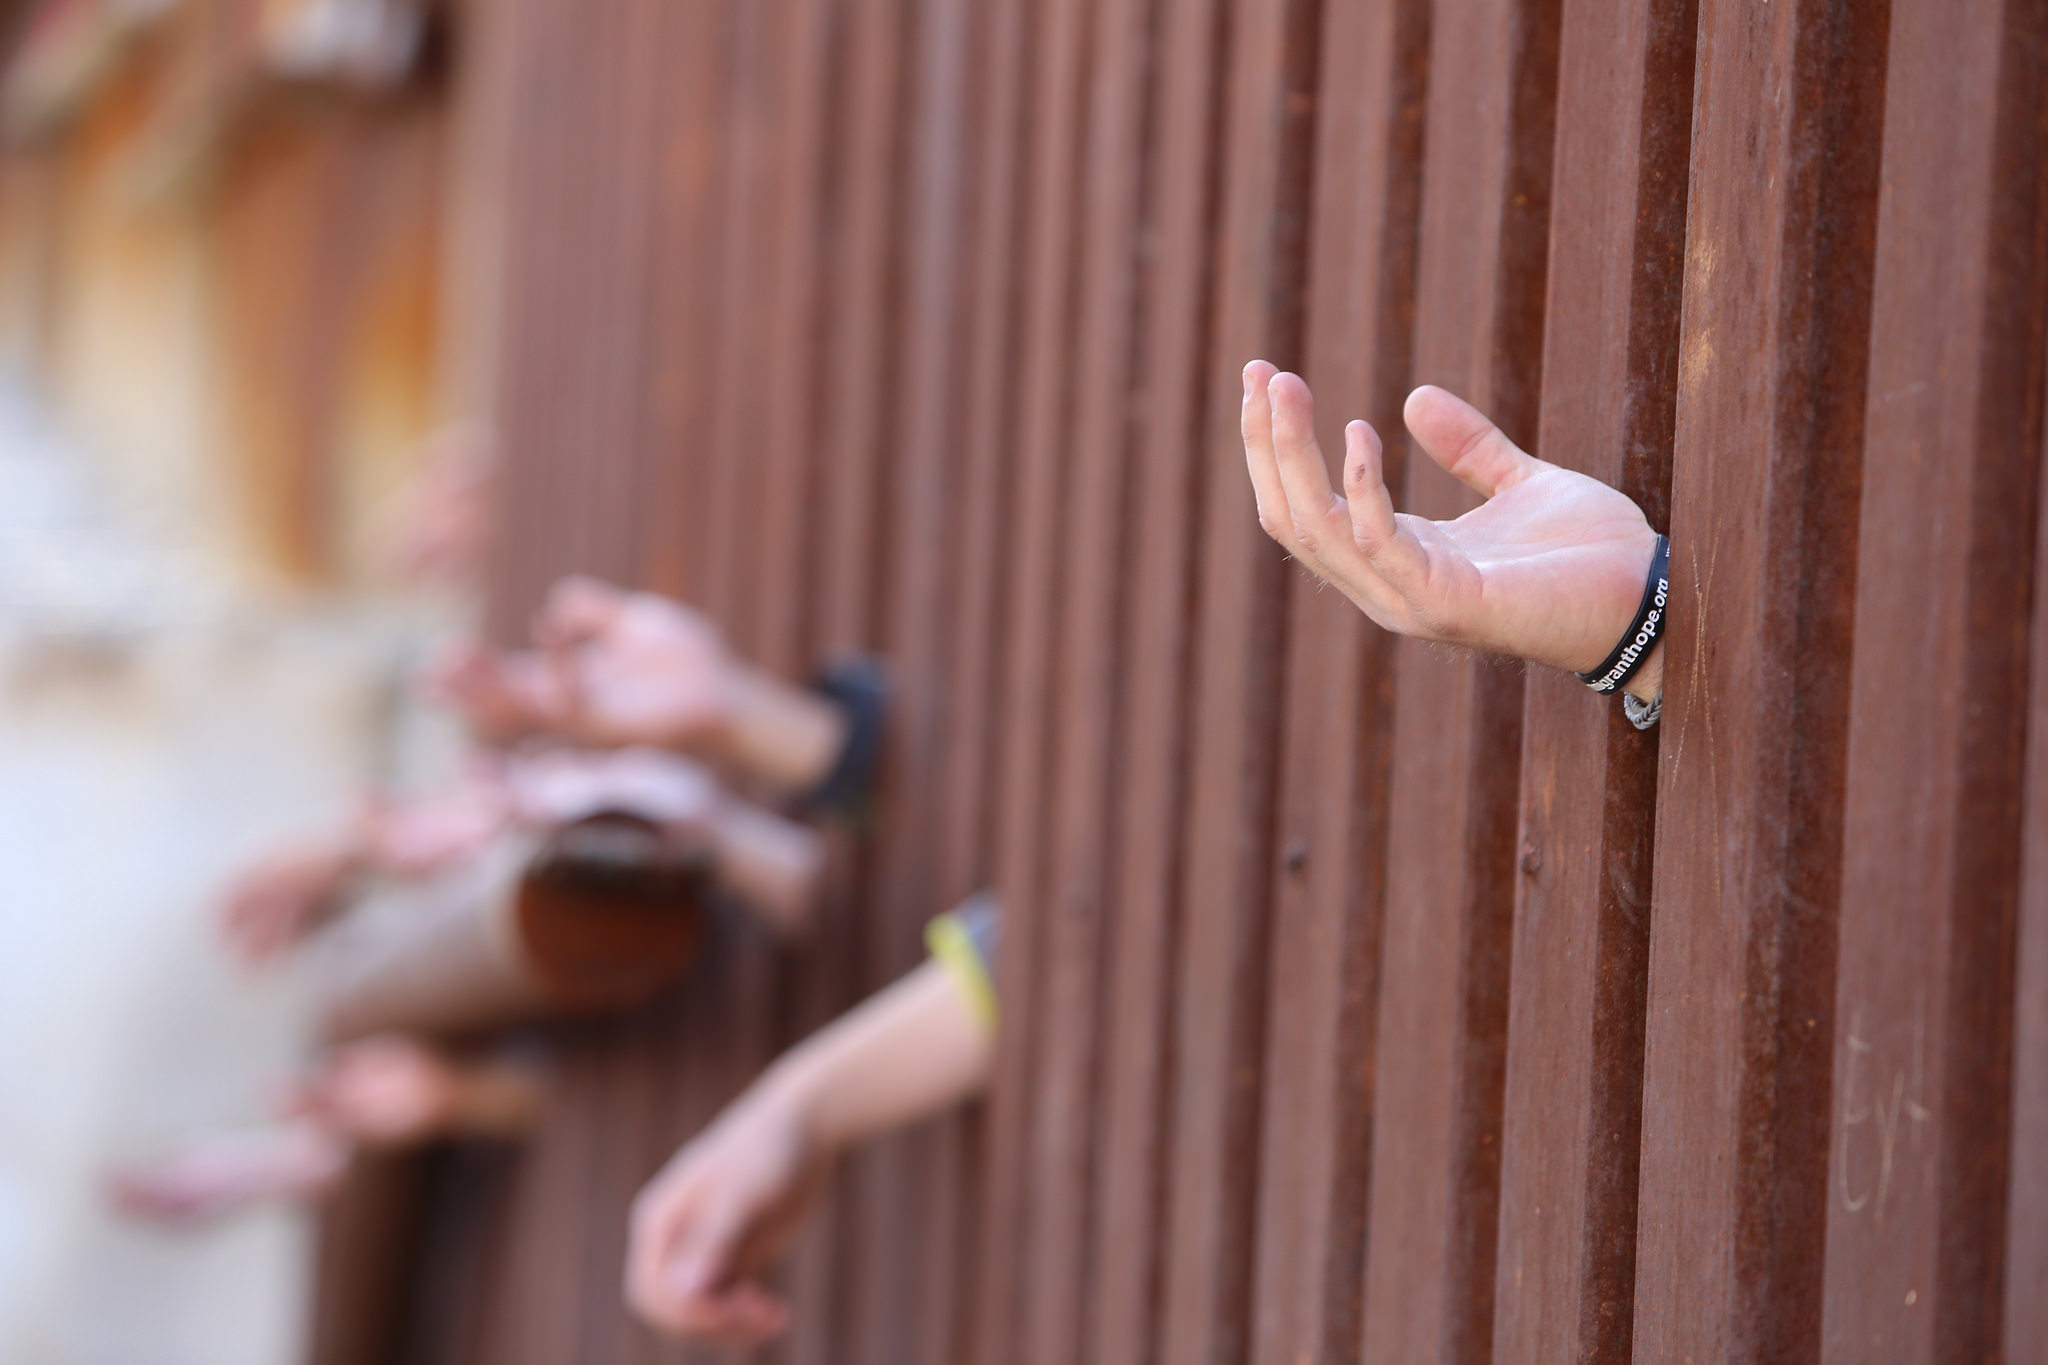 Hands reach across fence of US-Mexico border